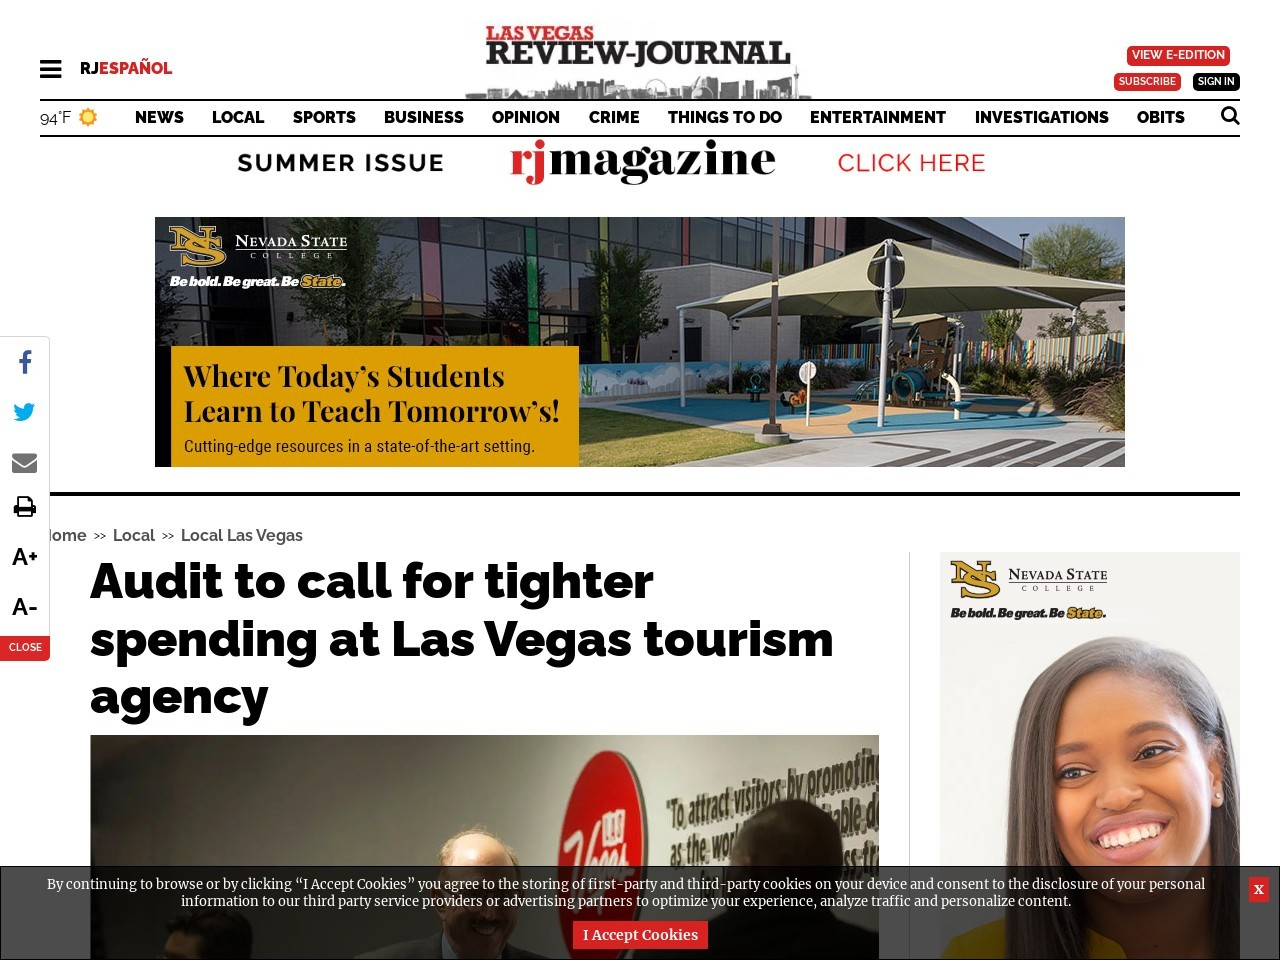 Audit to call for tighter spending at Las Vegas tourism agency